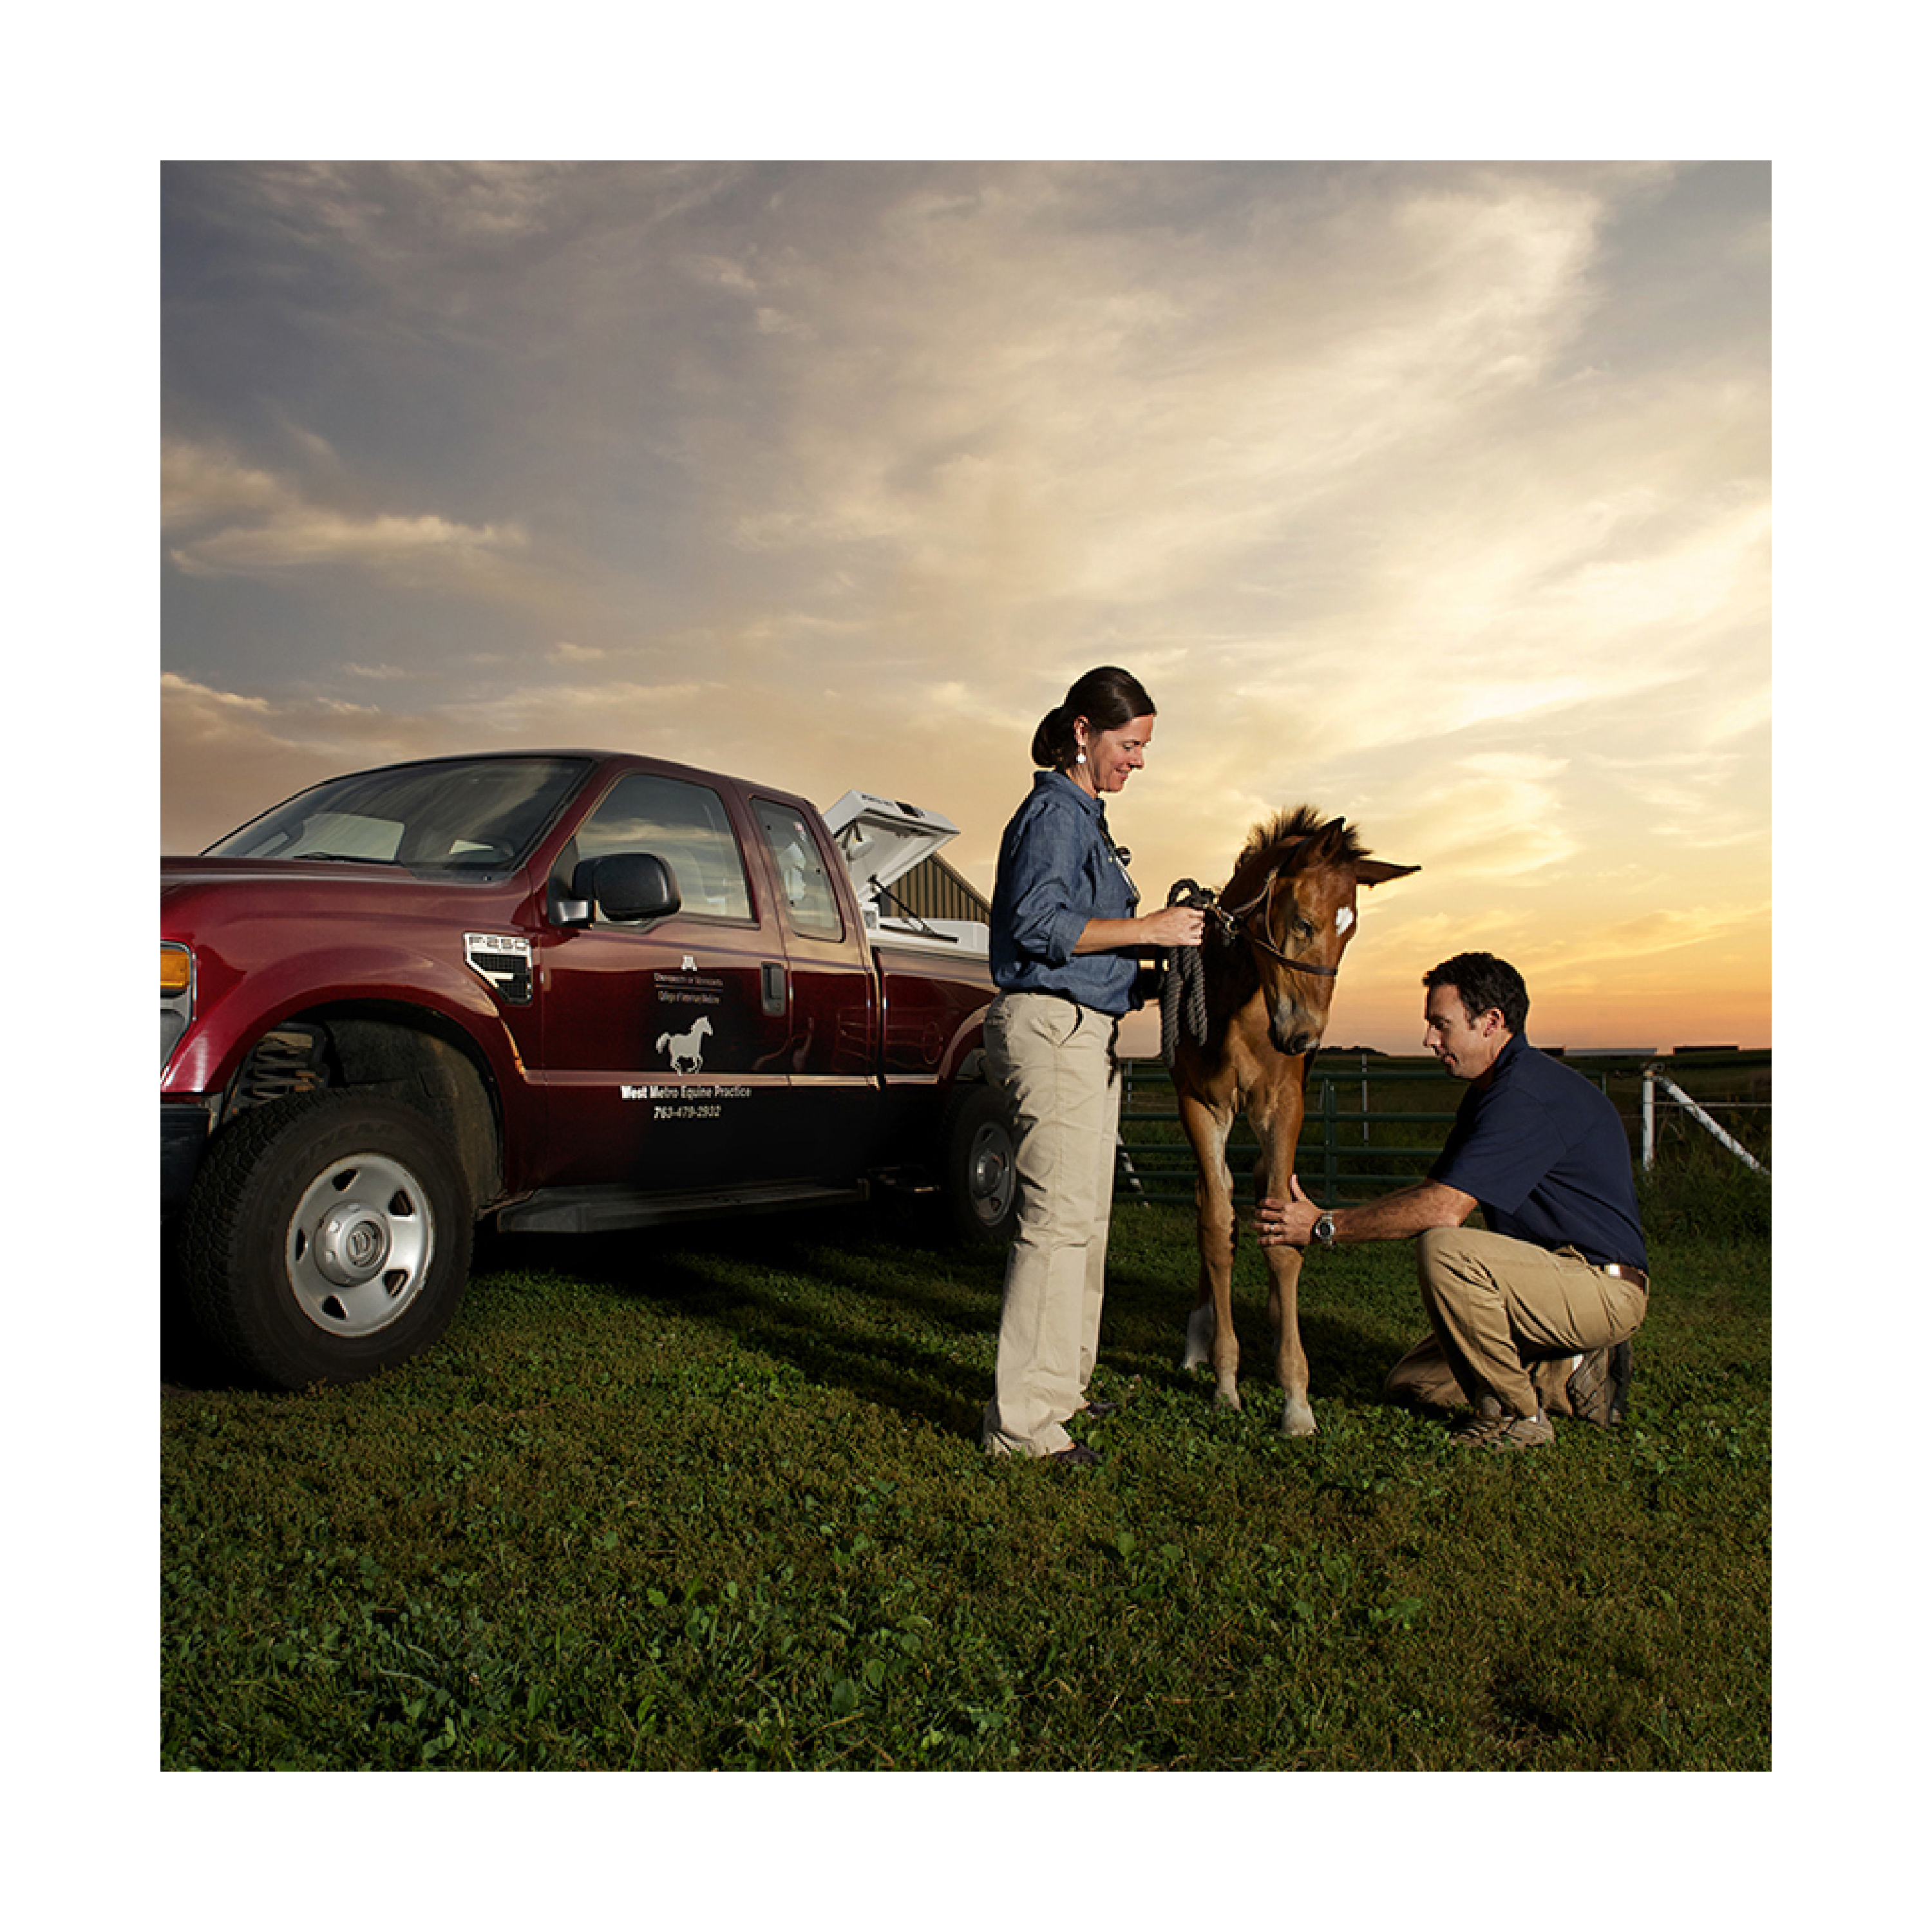 West Metro Equine Practice providers examining a horse in the field next to their truck